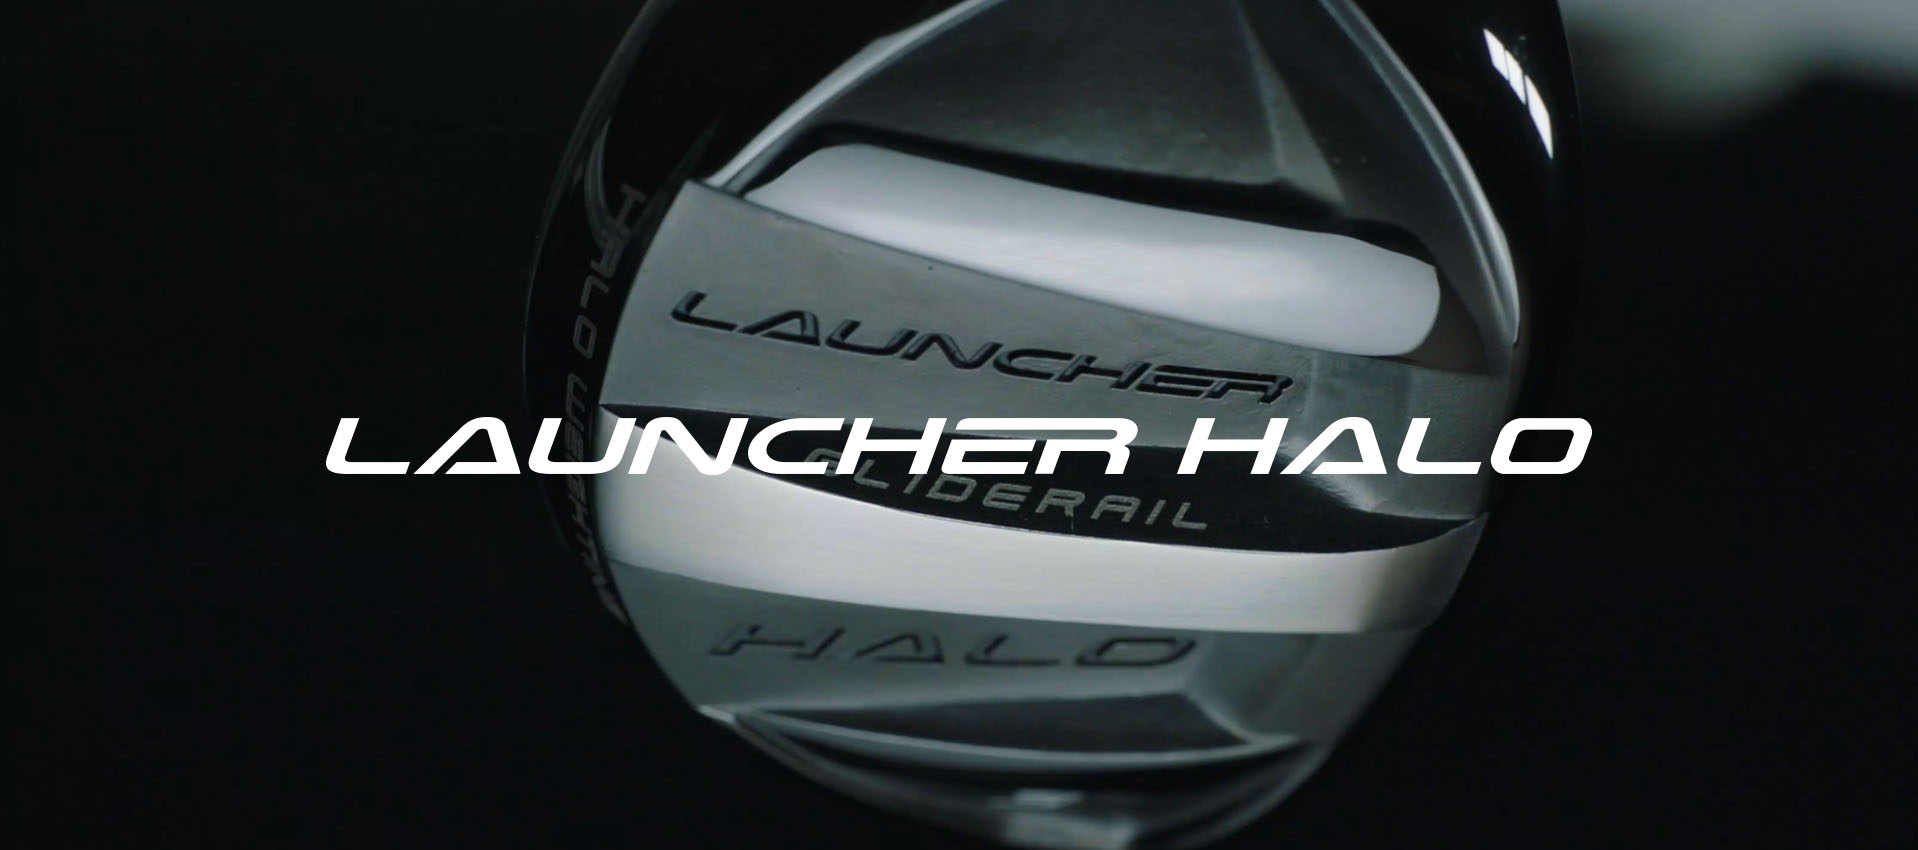 Cleveland Golf Launcher Halo Hybrids image prism